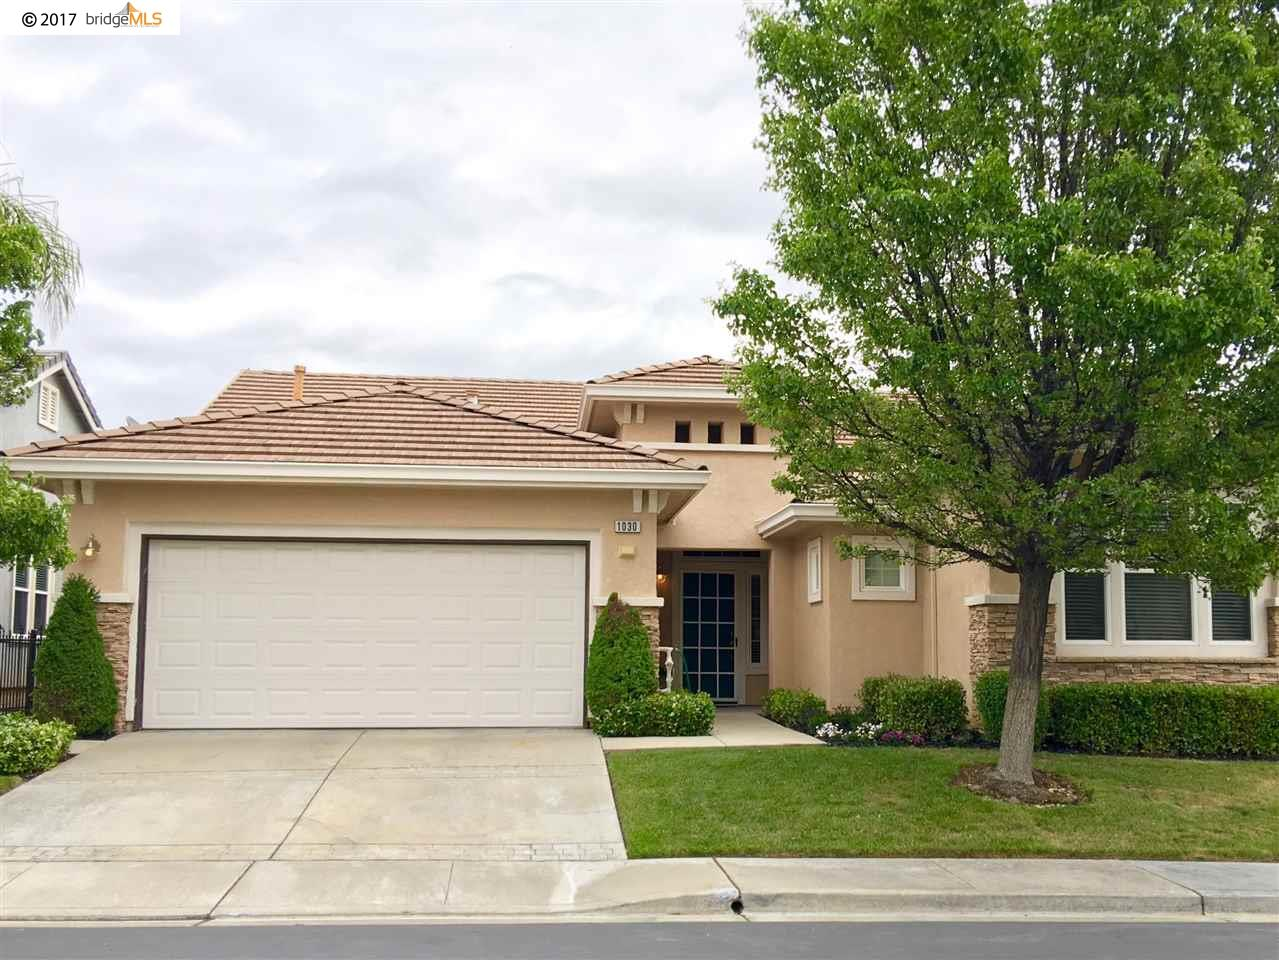 Single Family Home for Sale at 1030 BISMARCK TERR Brentwood, California 94513 United States